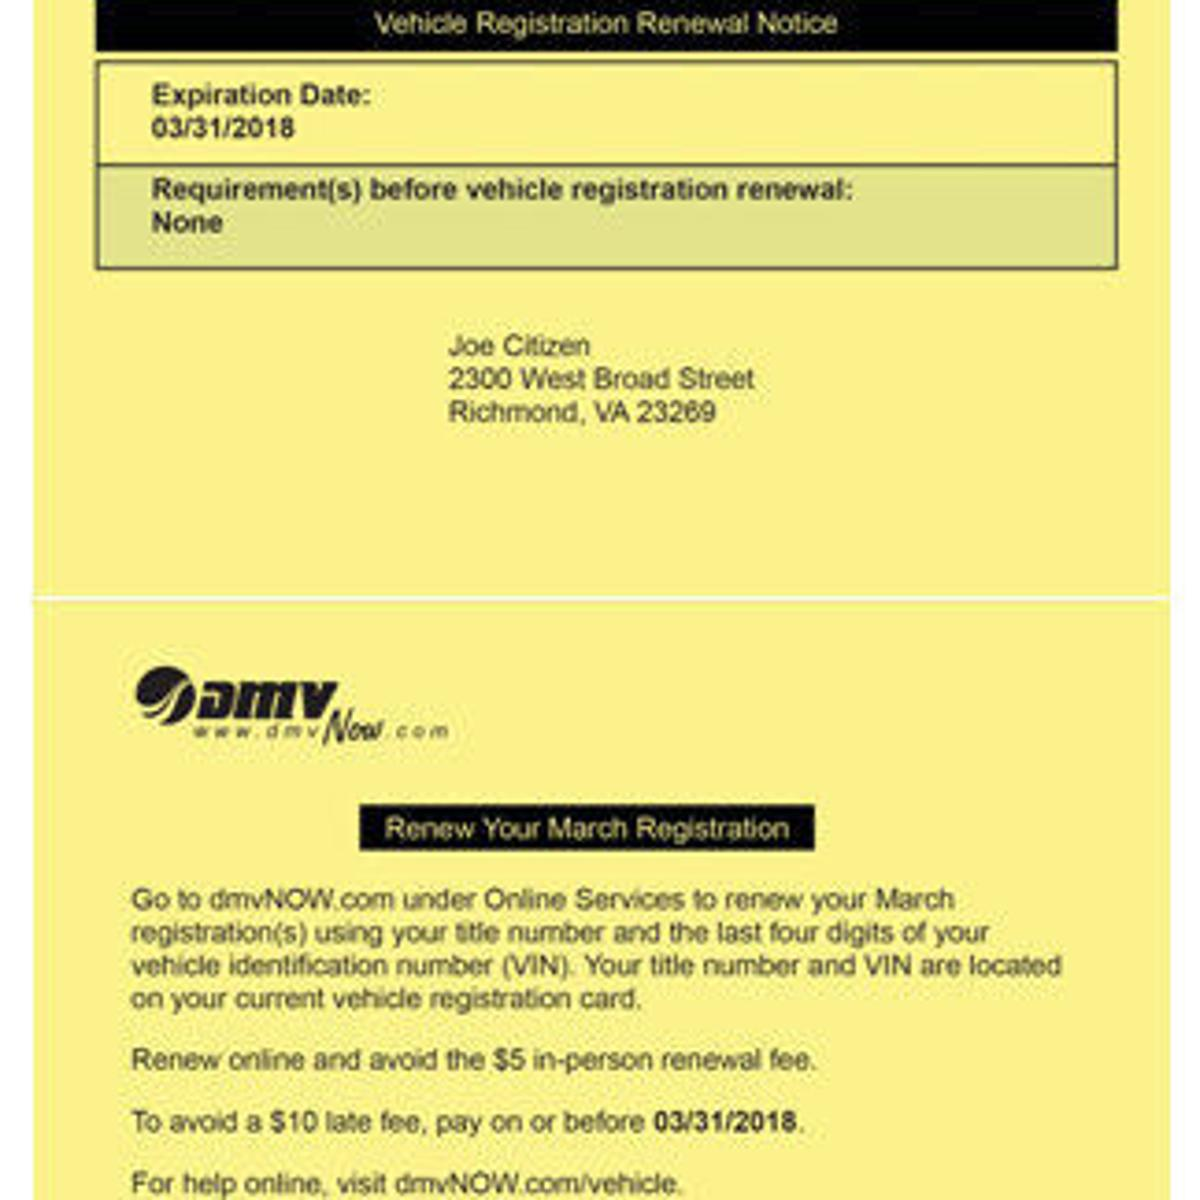 What is your vehicle registration number